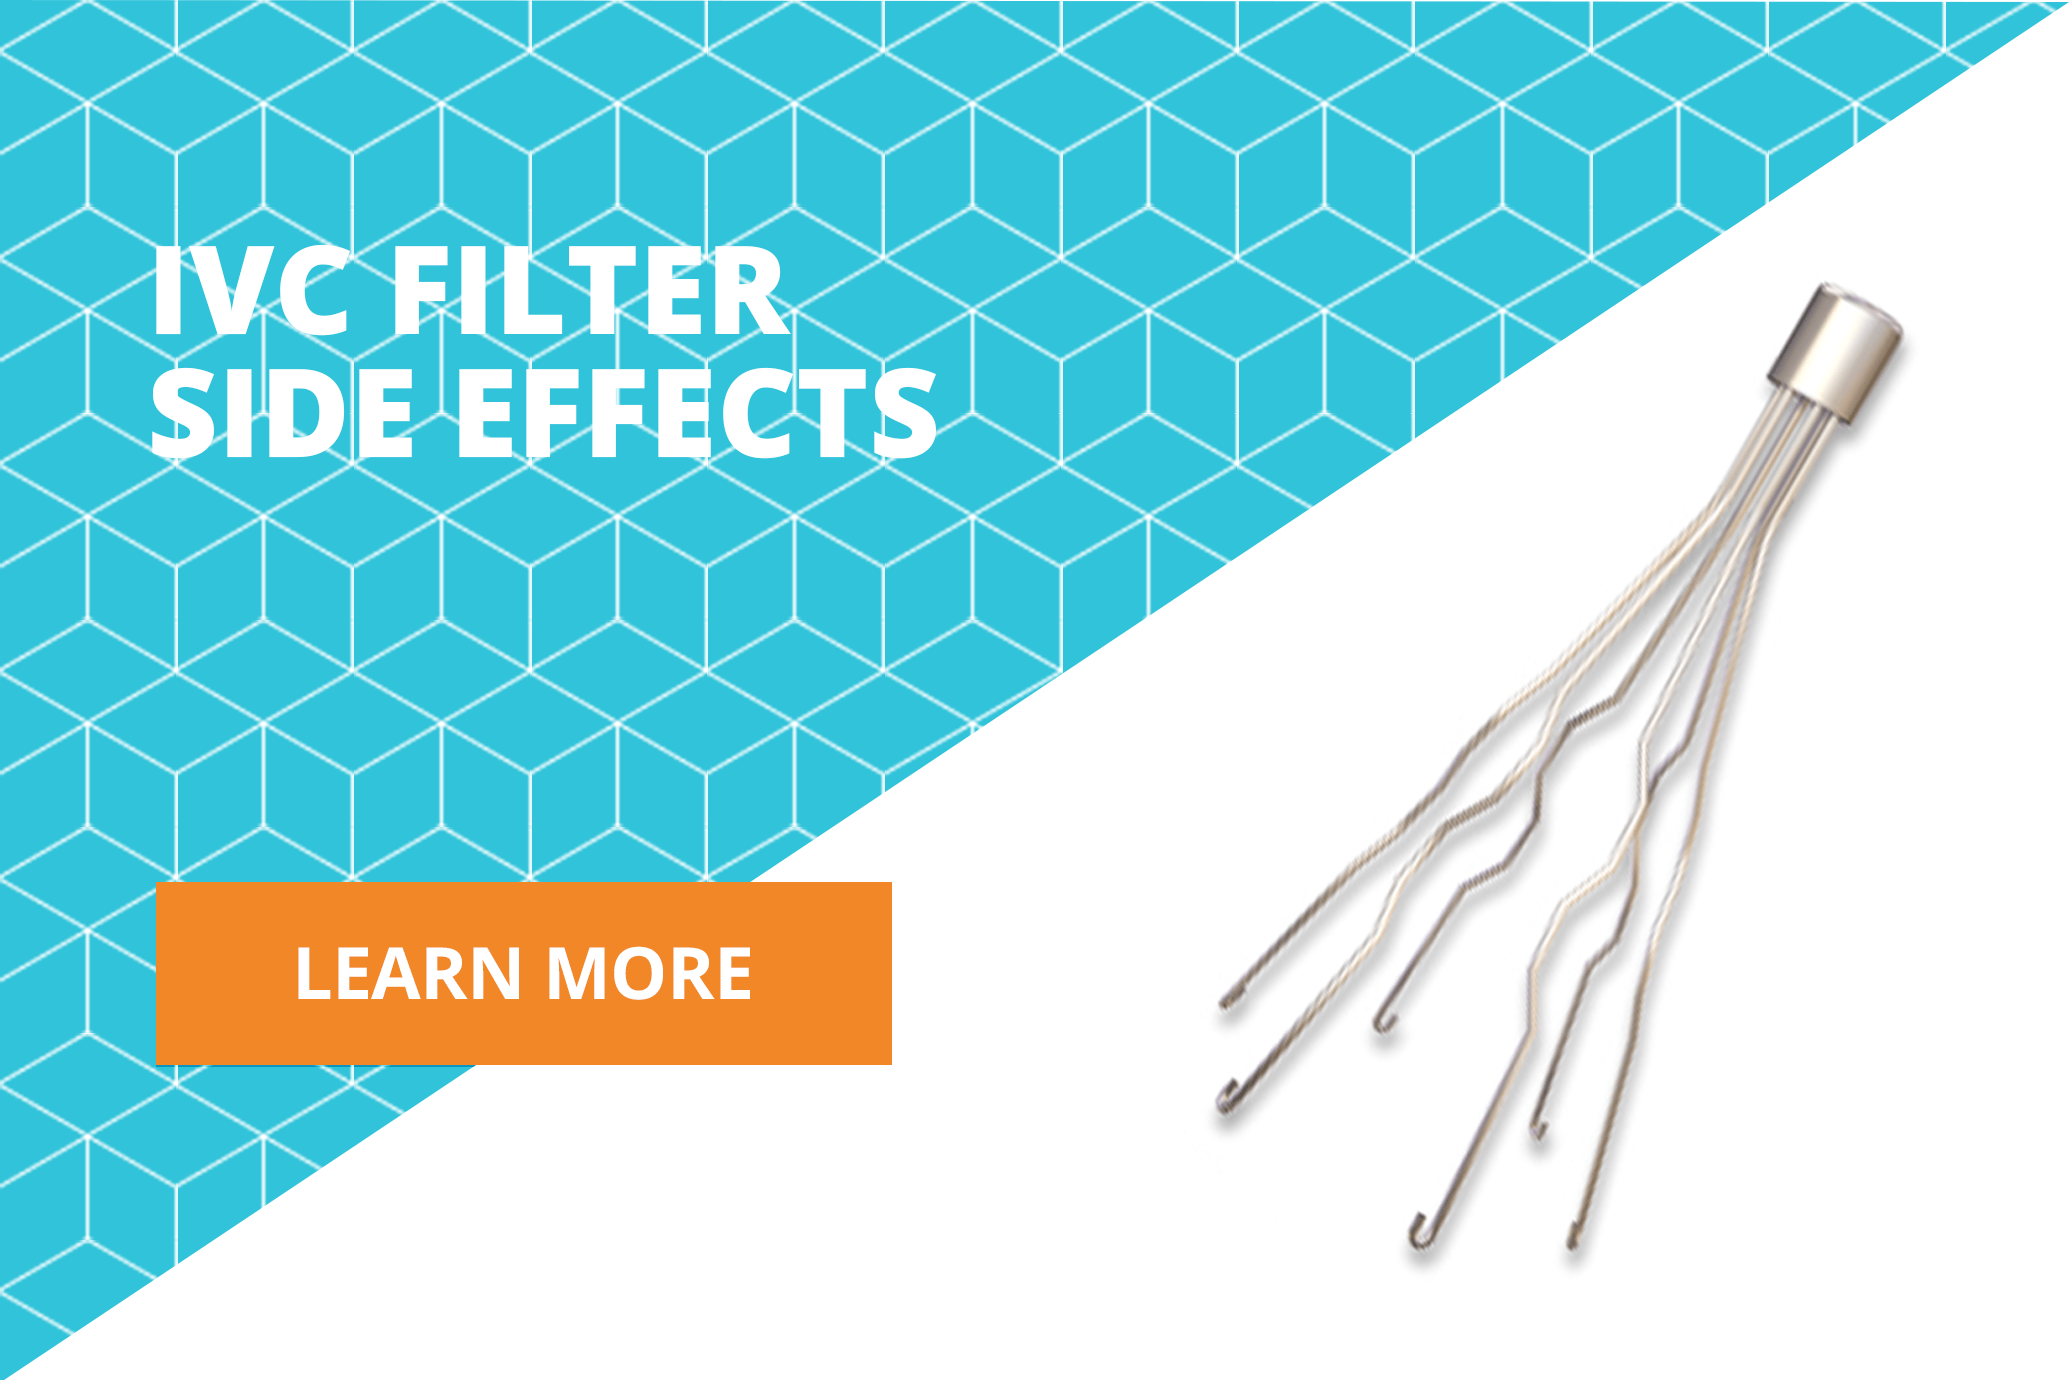 ivc filter side effects